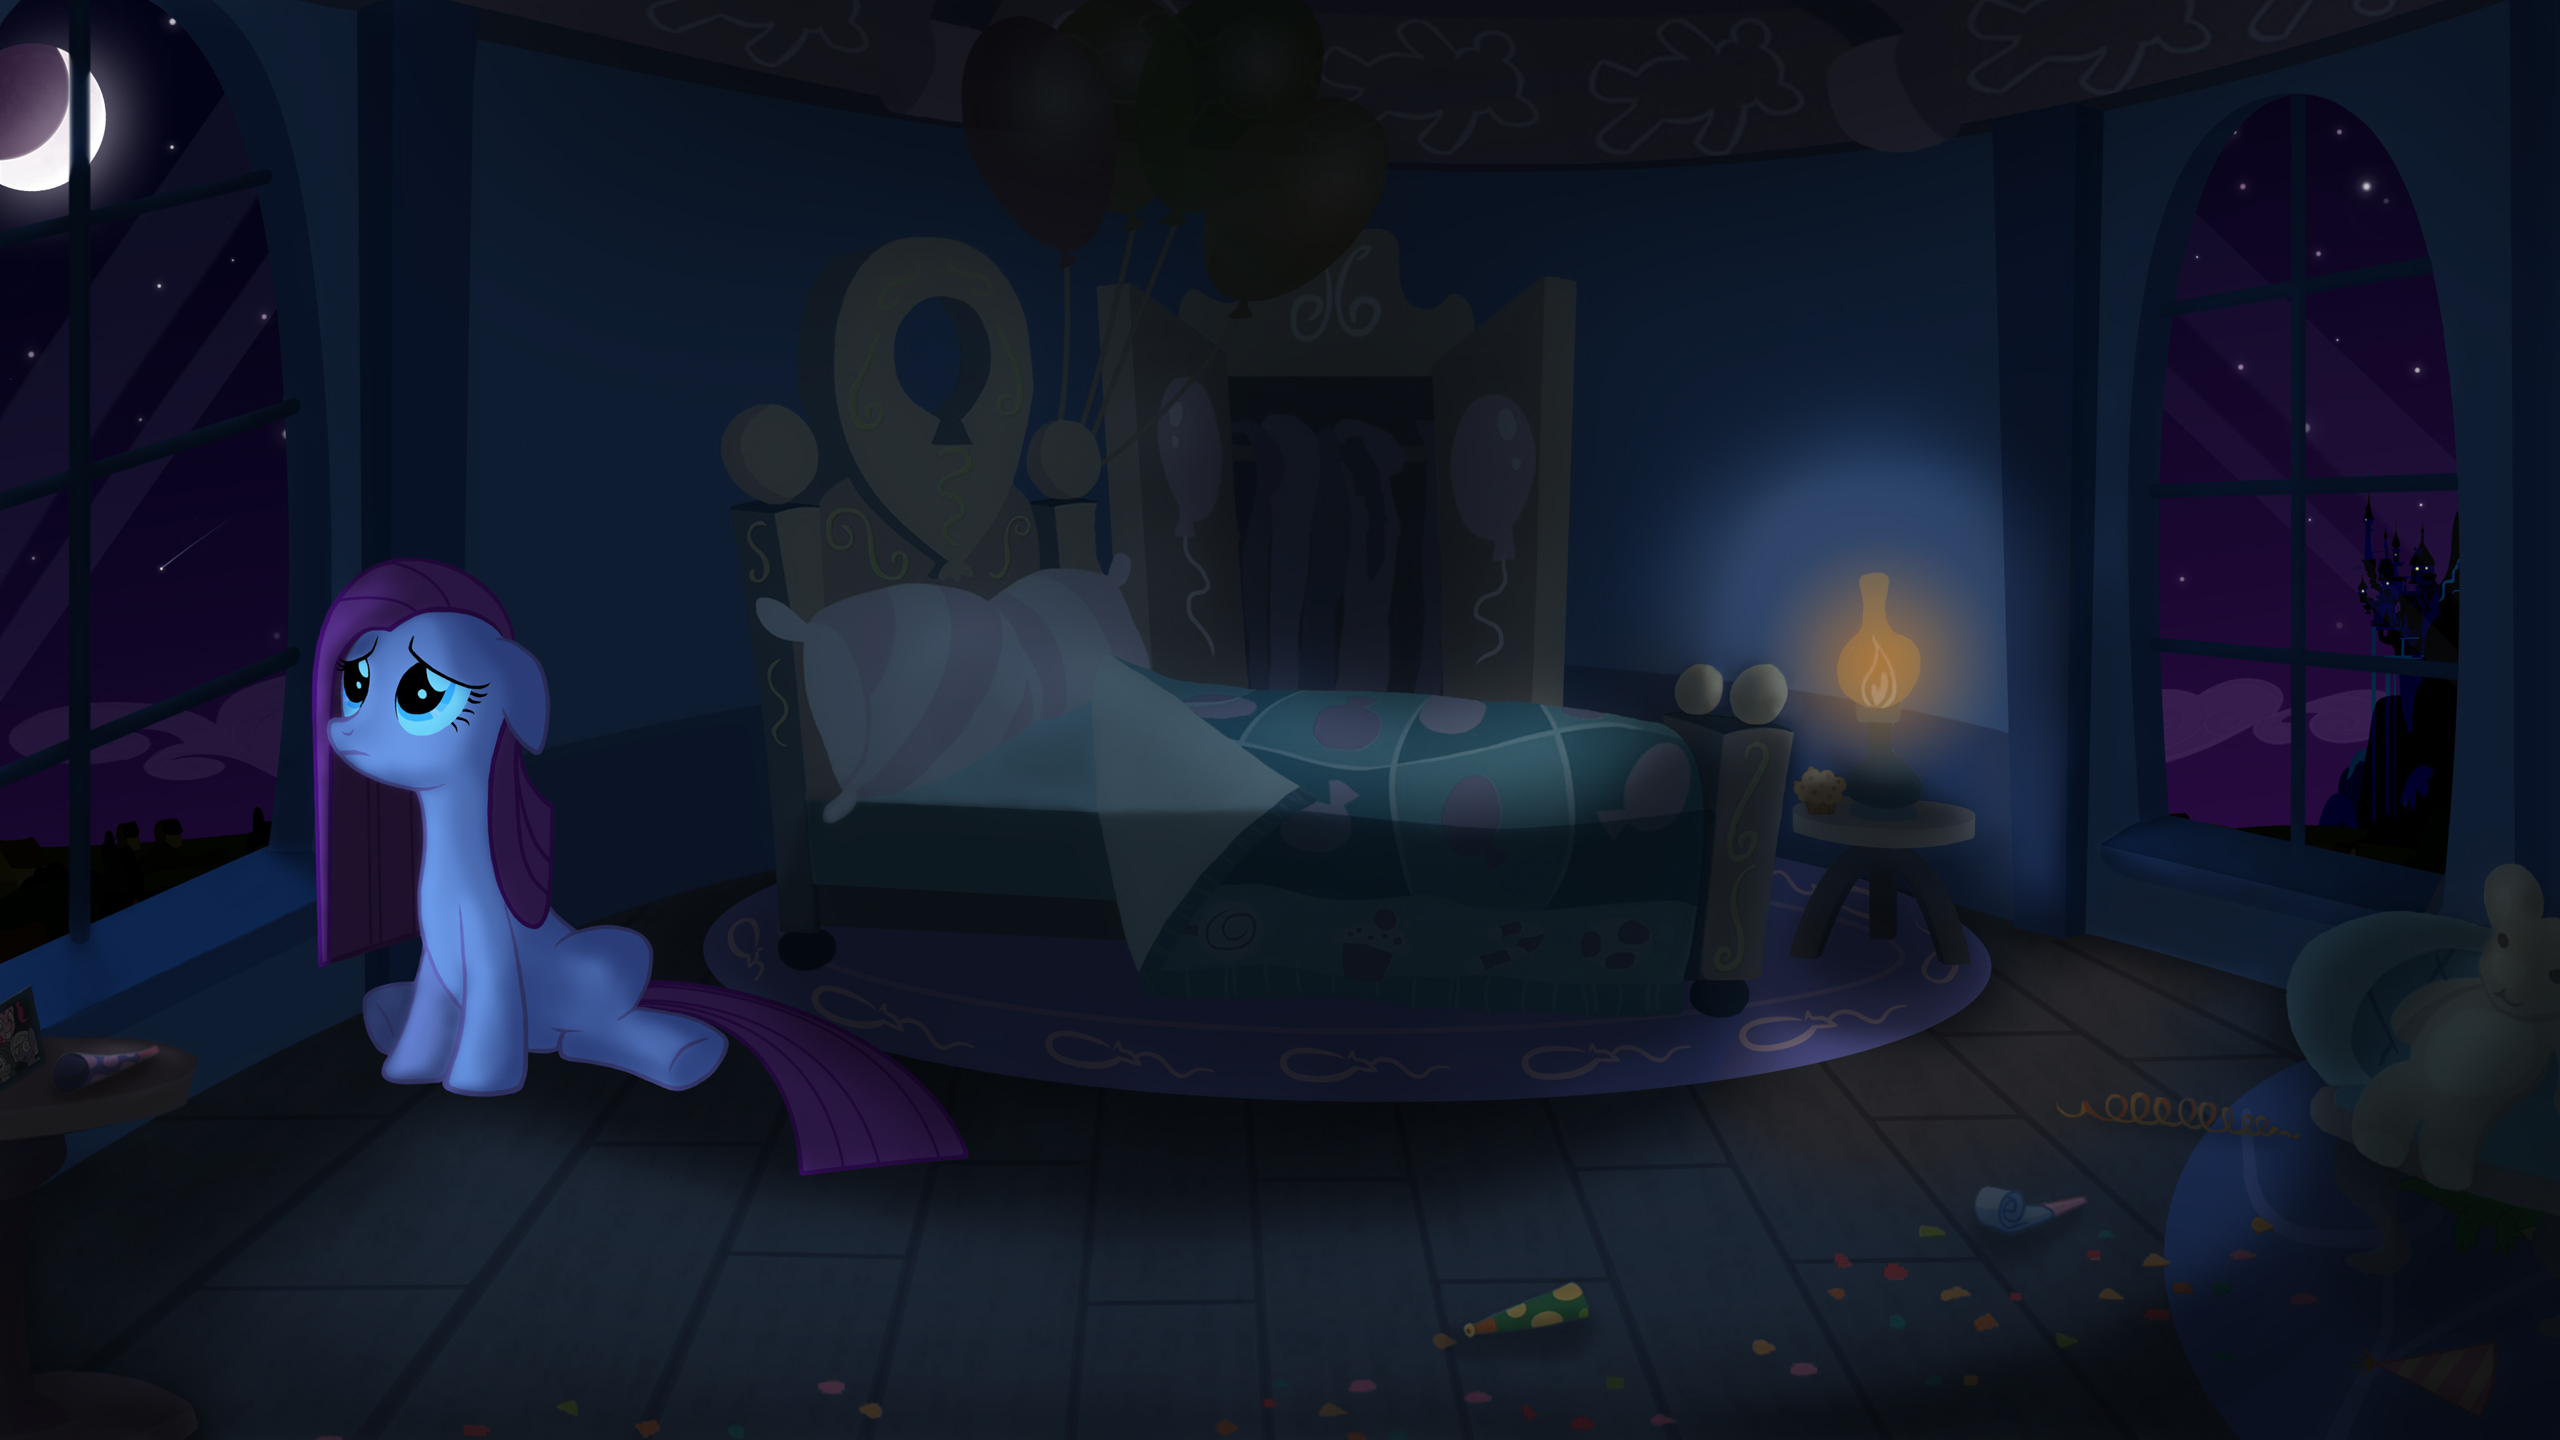 Insomnia by pyitp